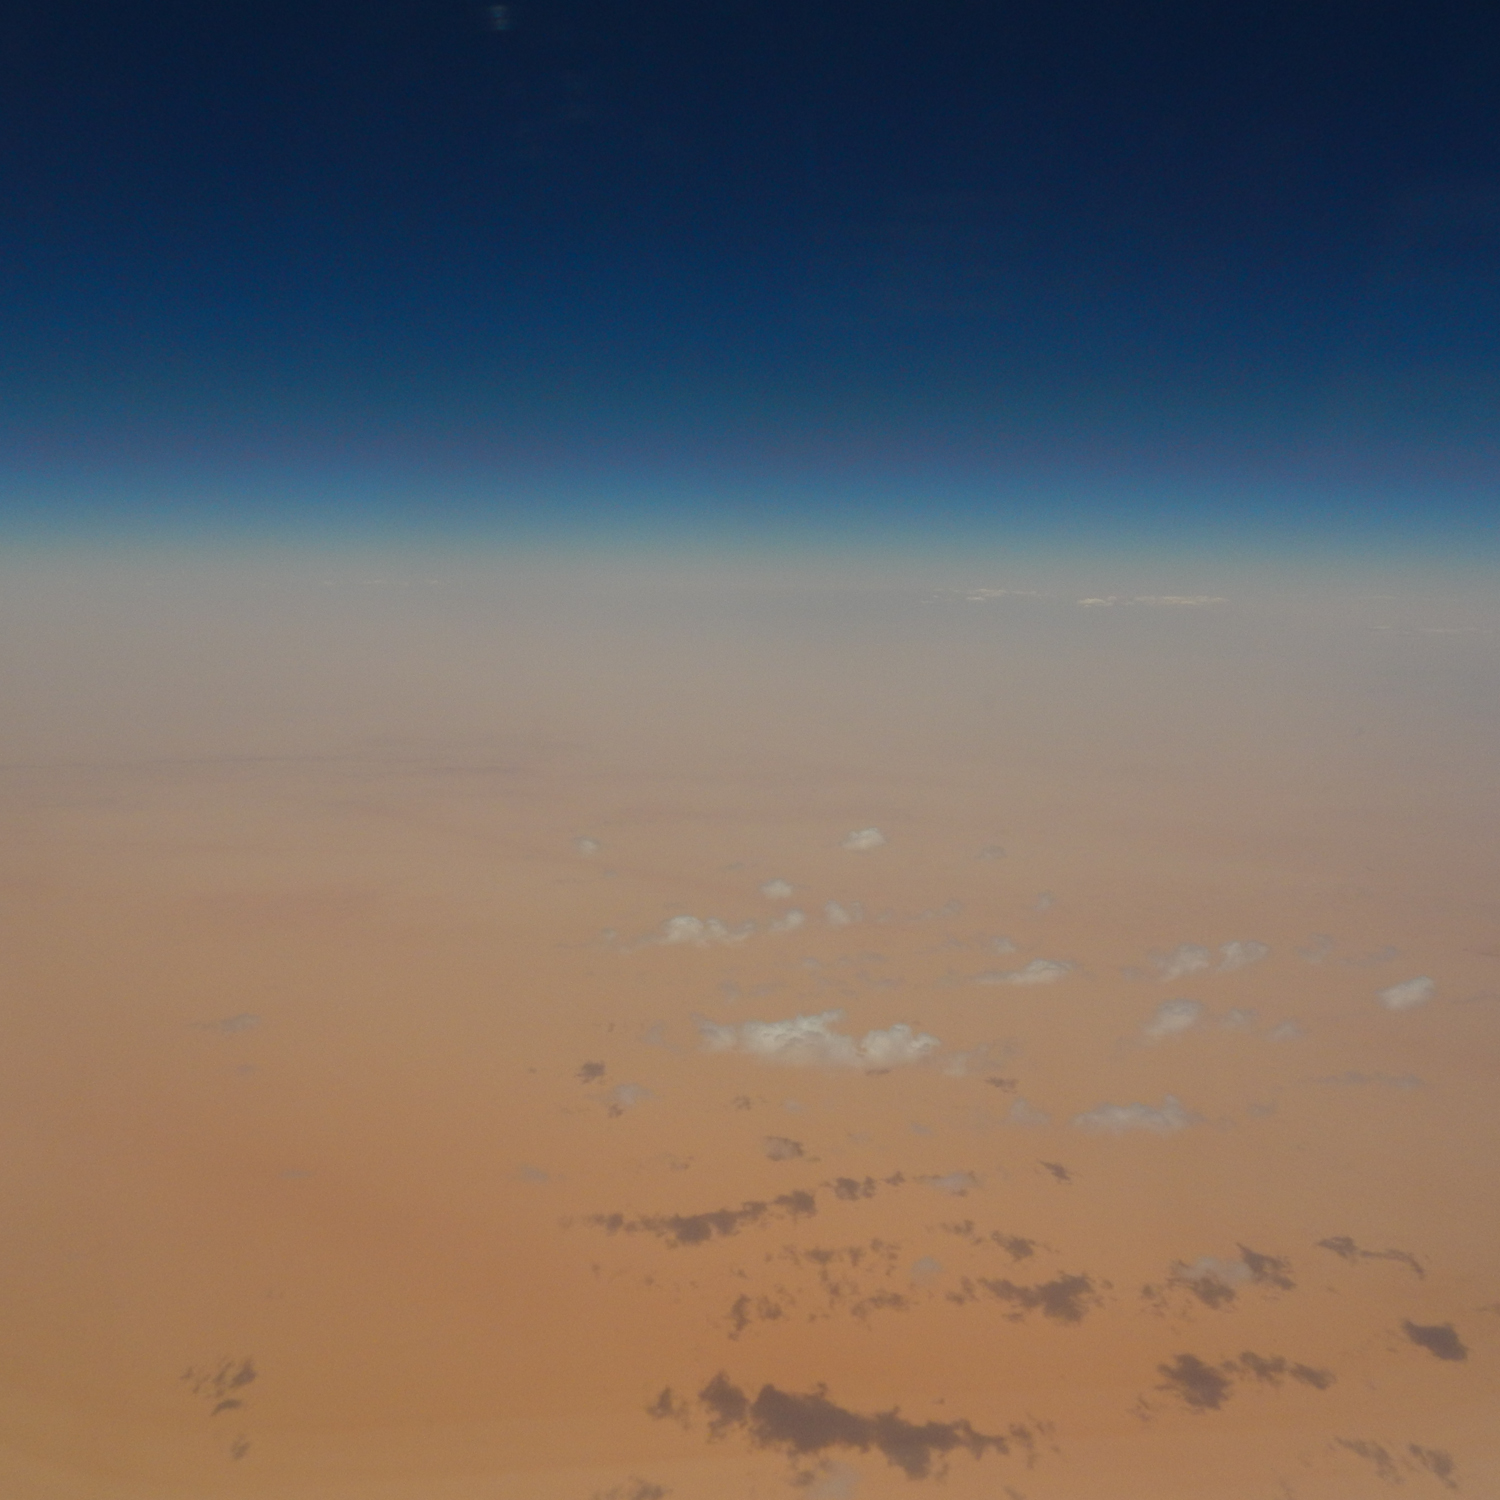 sahara from above